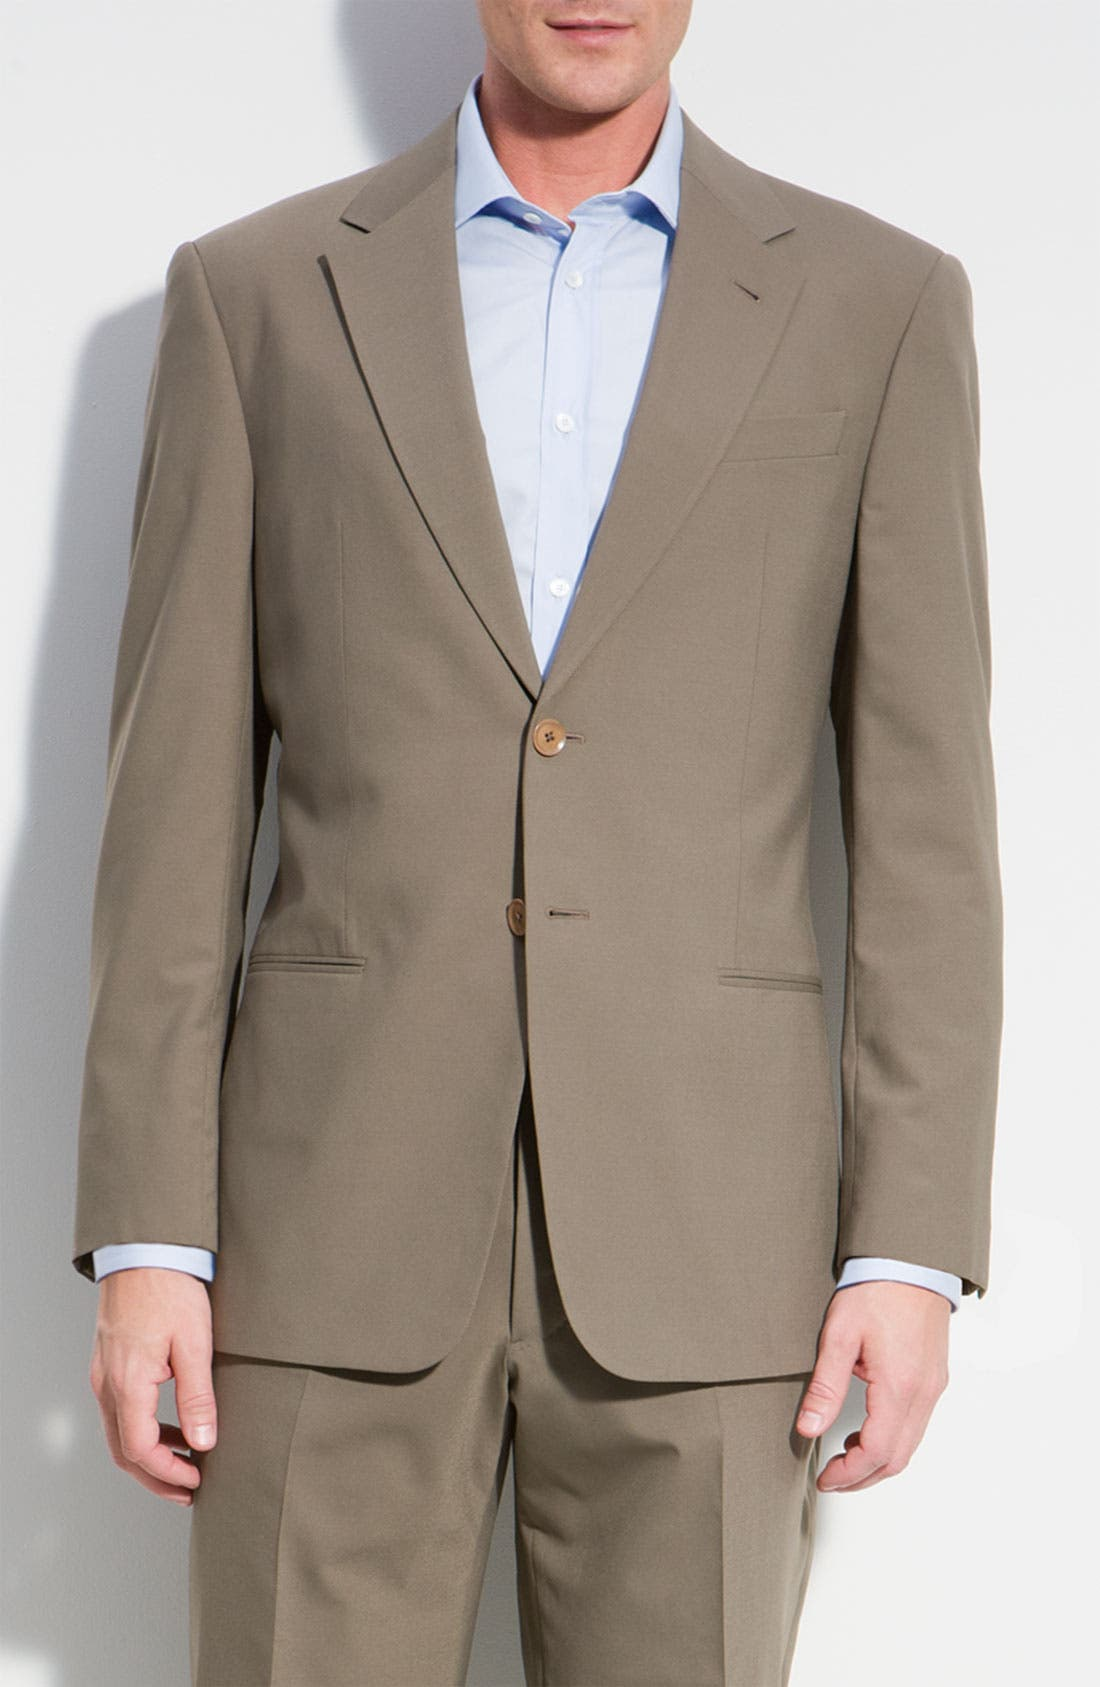 Main Image - Armani Collezioni 'Executive' Wool Blend Suit